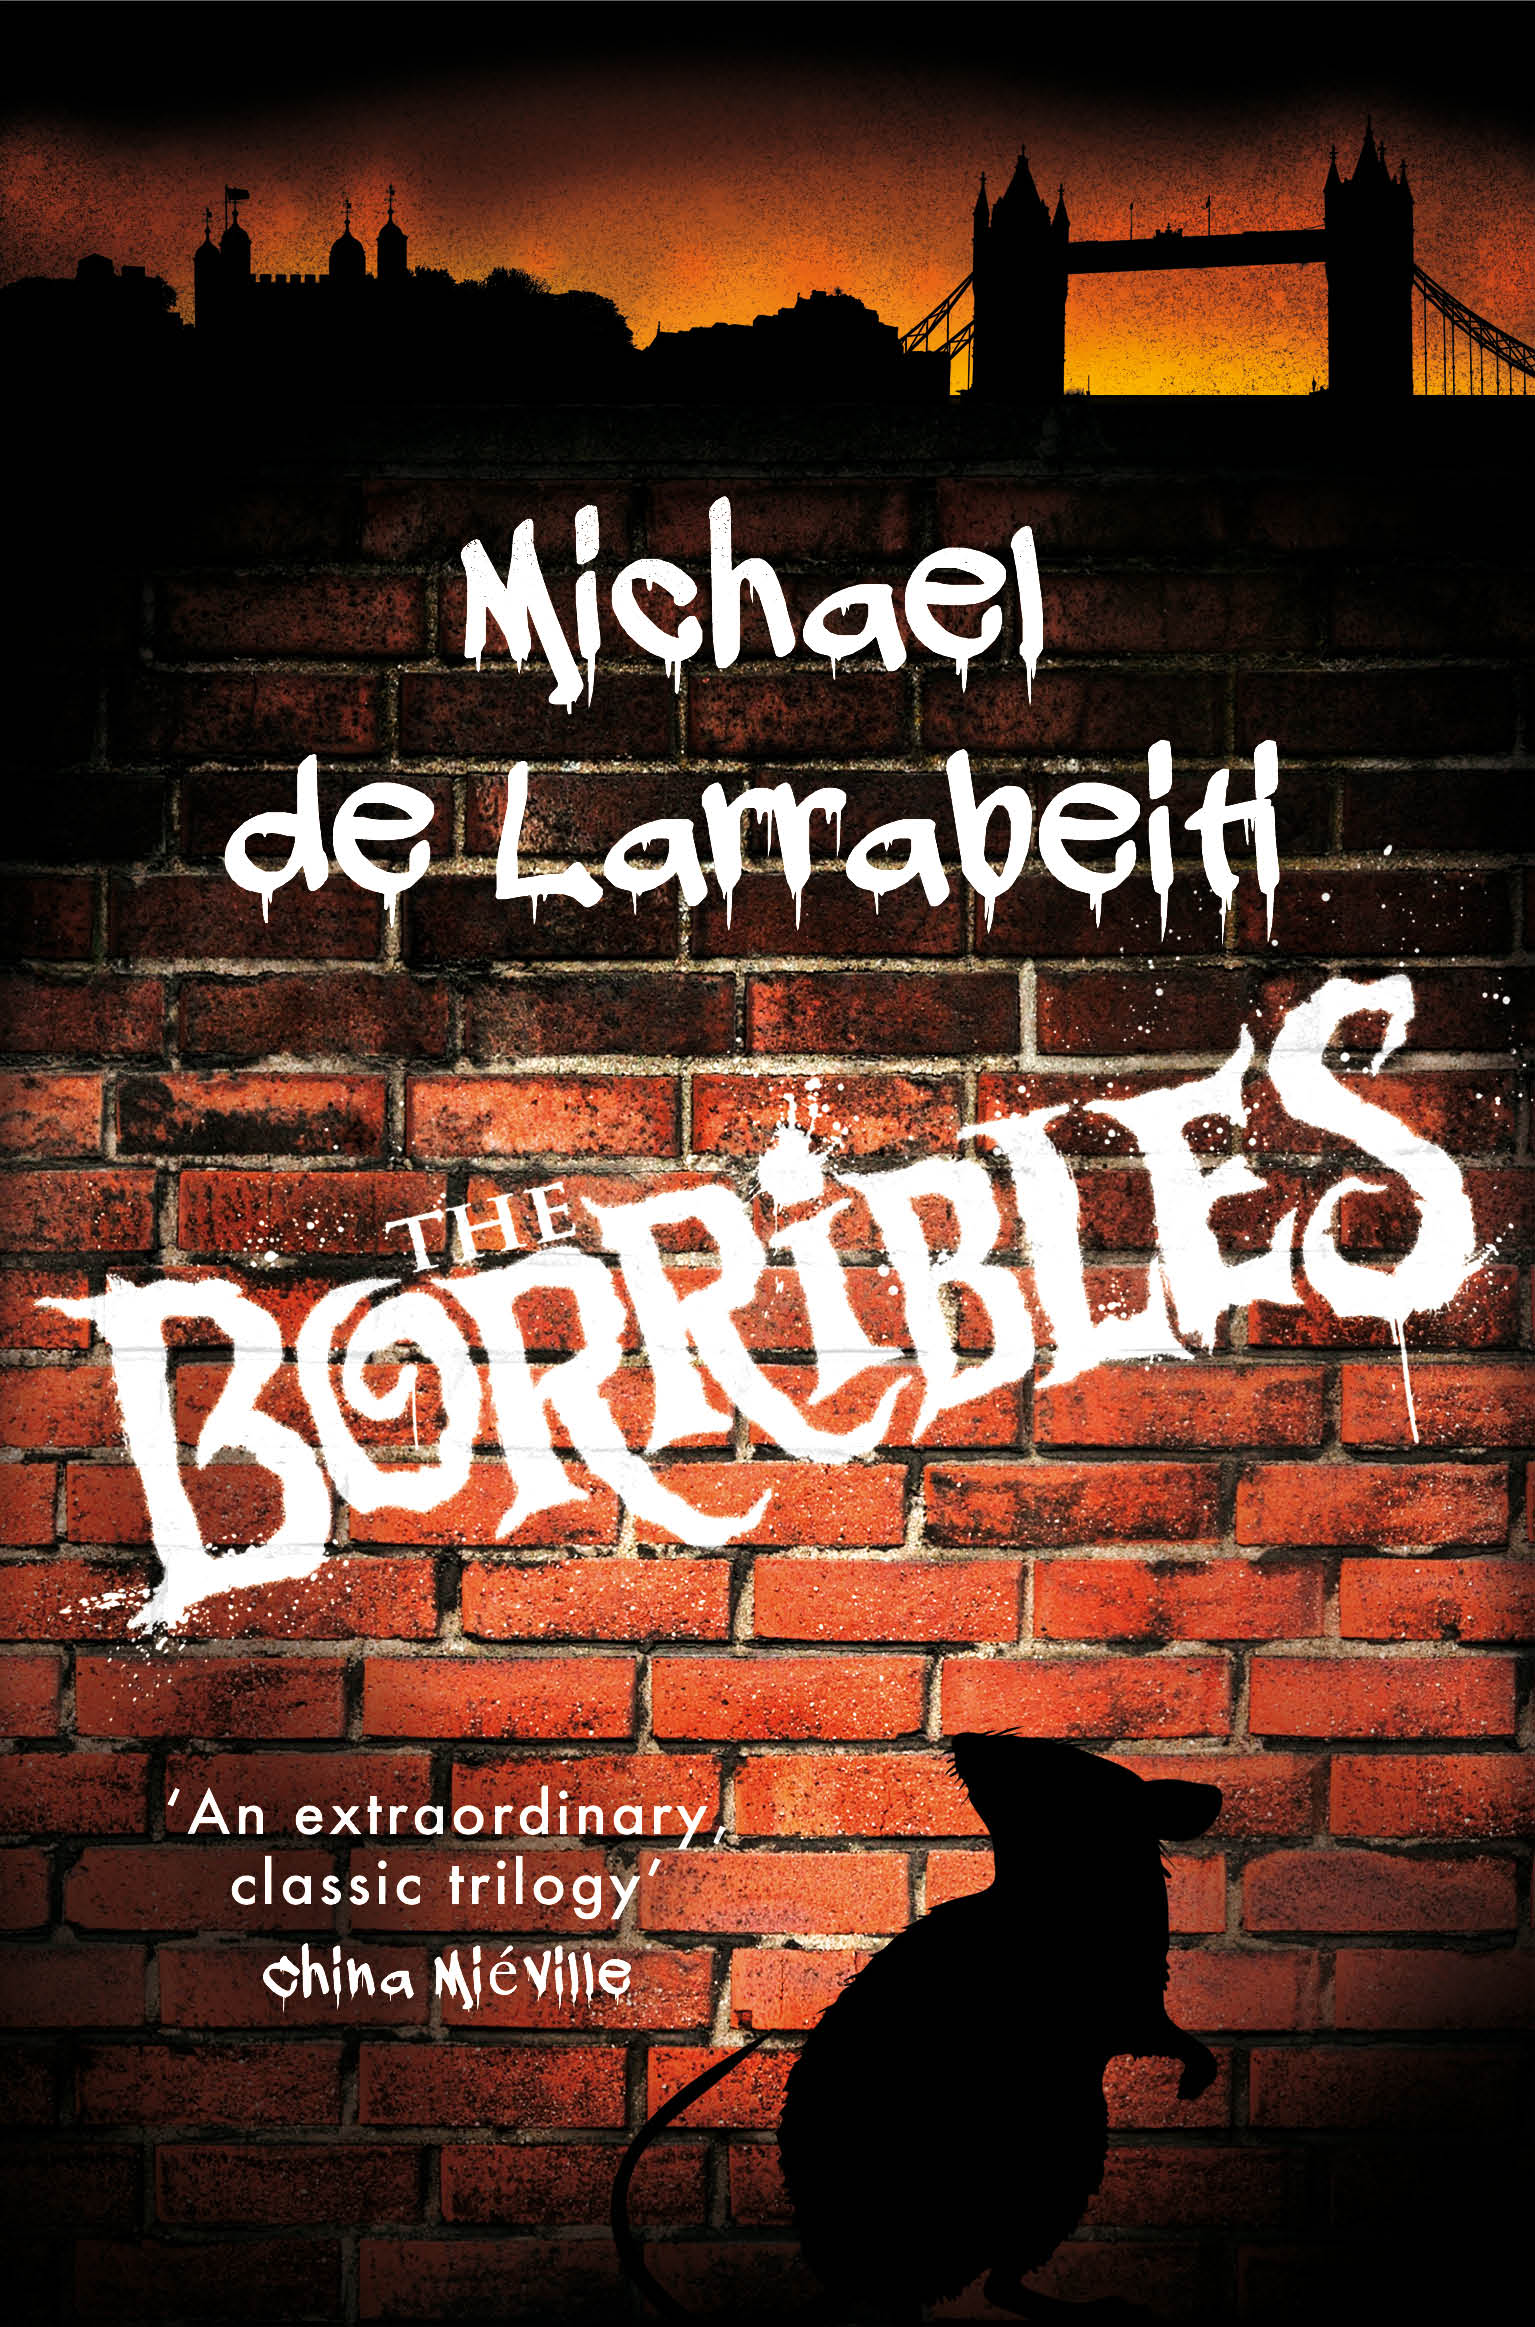 The Borribles - our new ebook cover